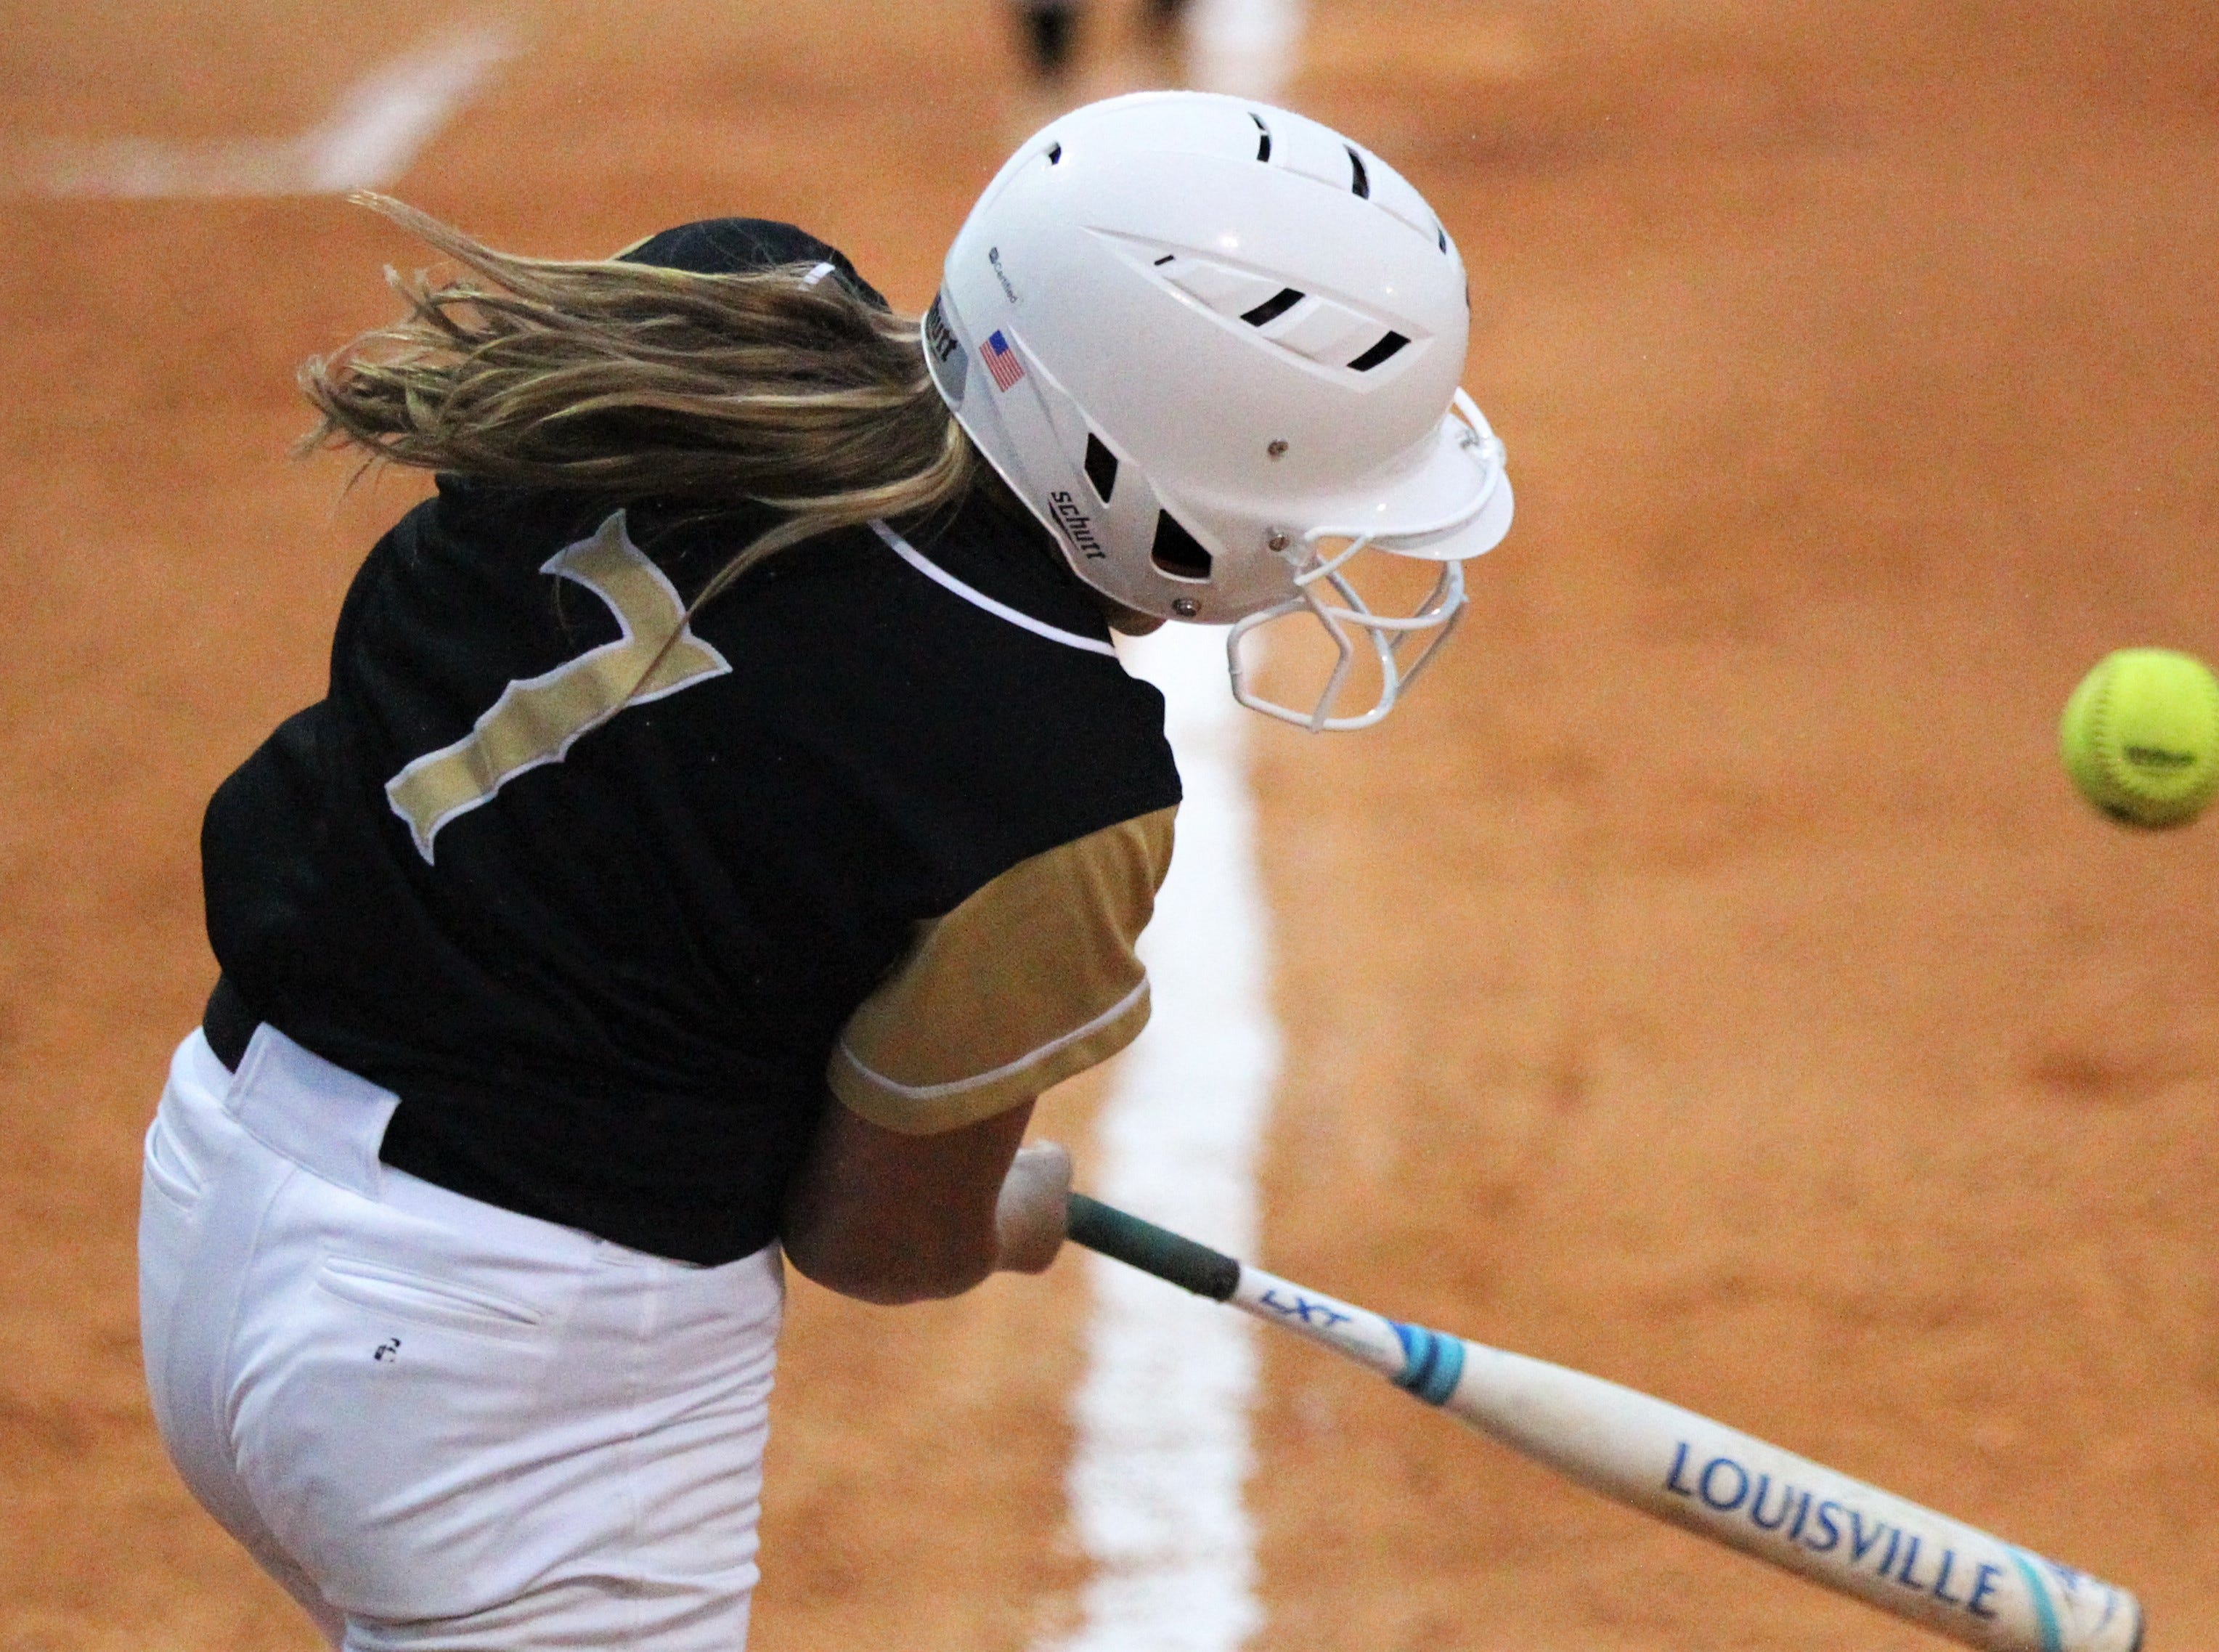 Lincoln freshman Gwendolen McGinnis belts a hit as Lincoln's softball team beat Florida High 7-3 on Thursday, April 4, 2019.